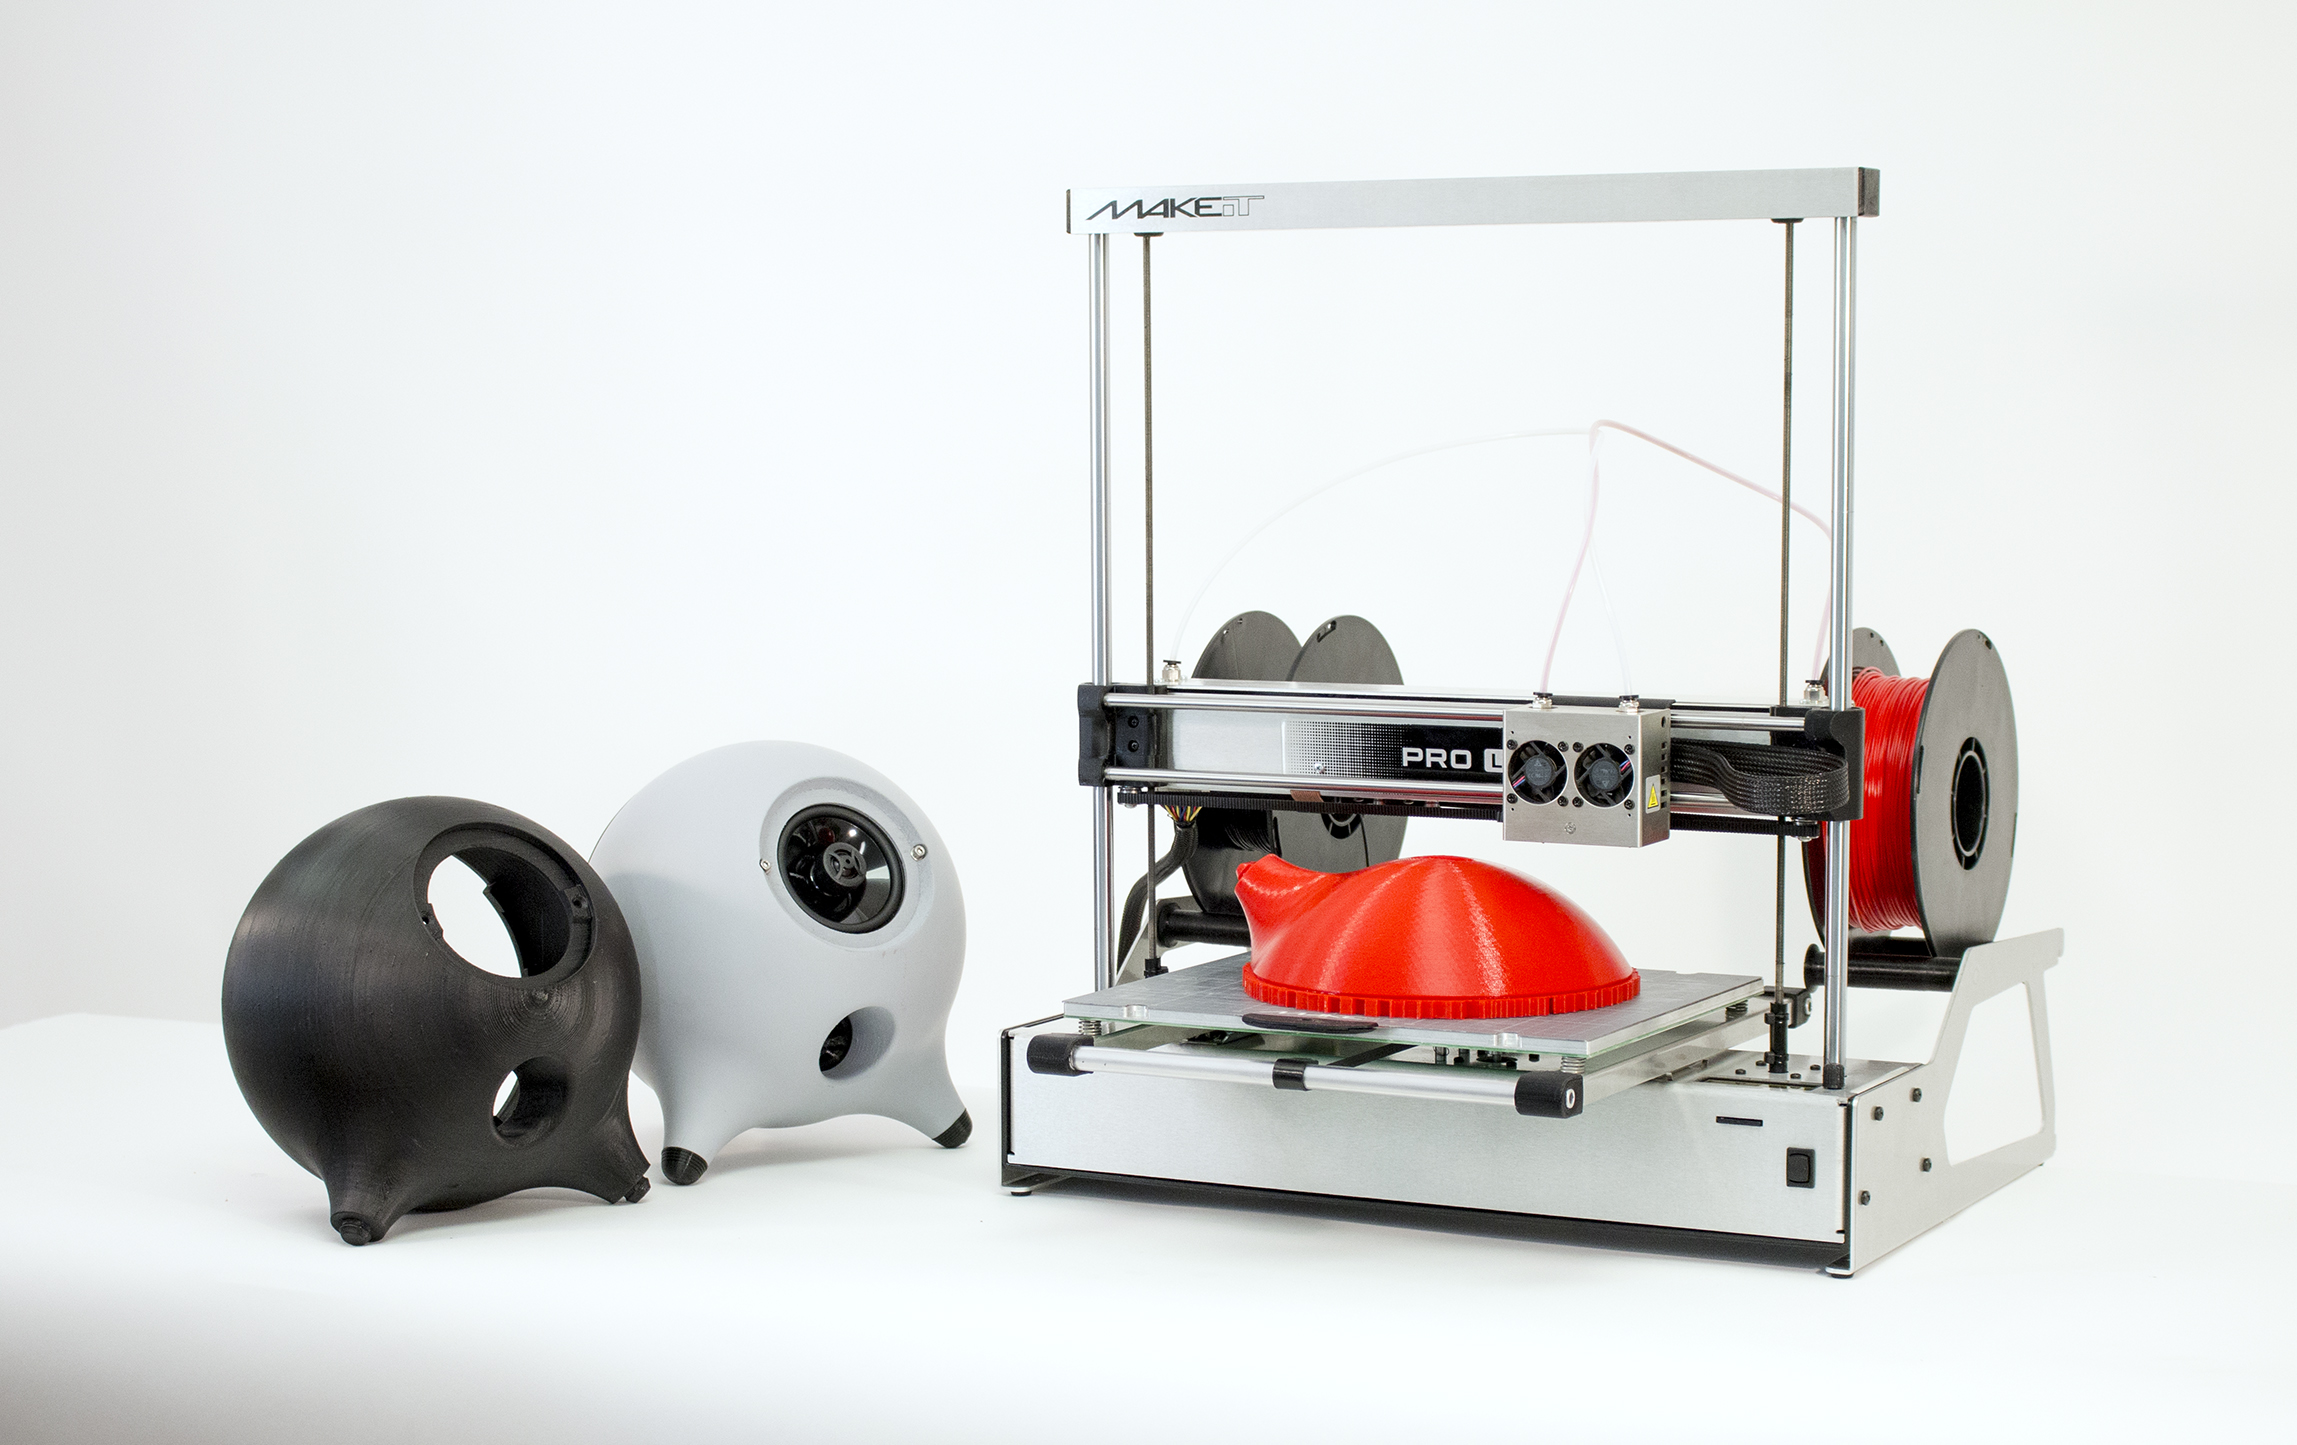 , More About MAKEiT, a 3D Printer Startup